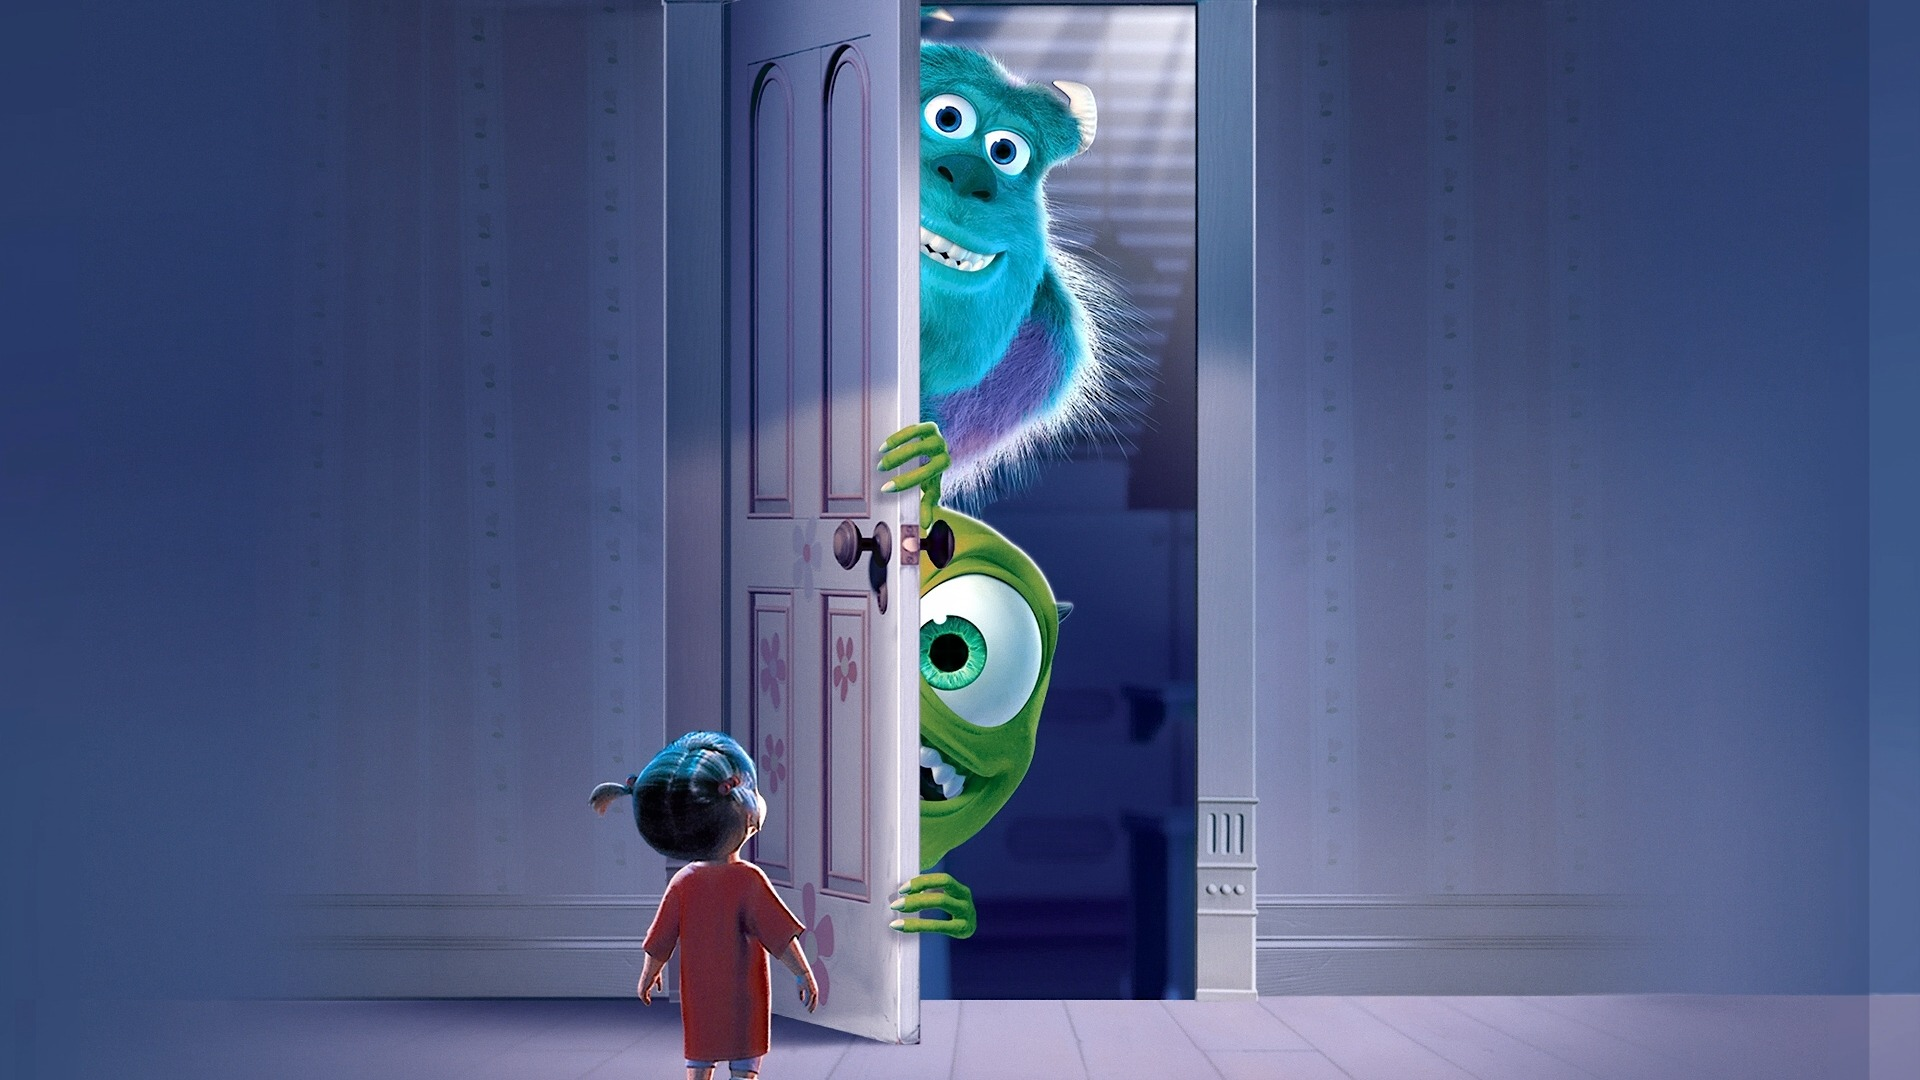 monsters inc Monsters, inc is the third franchise created by pixar and distributed by disney, after toy story and a bug's life monsters, inc was released on november 2, 2001 and monsters university was released on june 21, 2013.